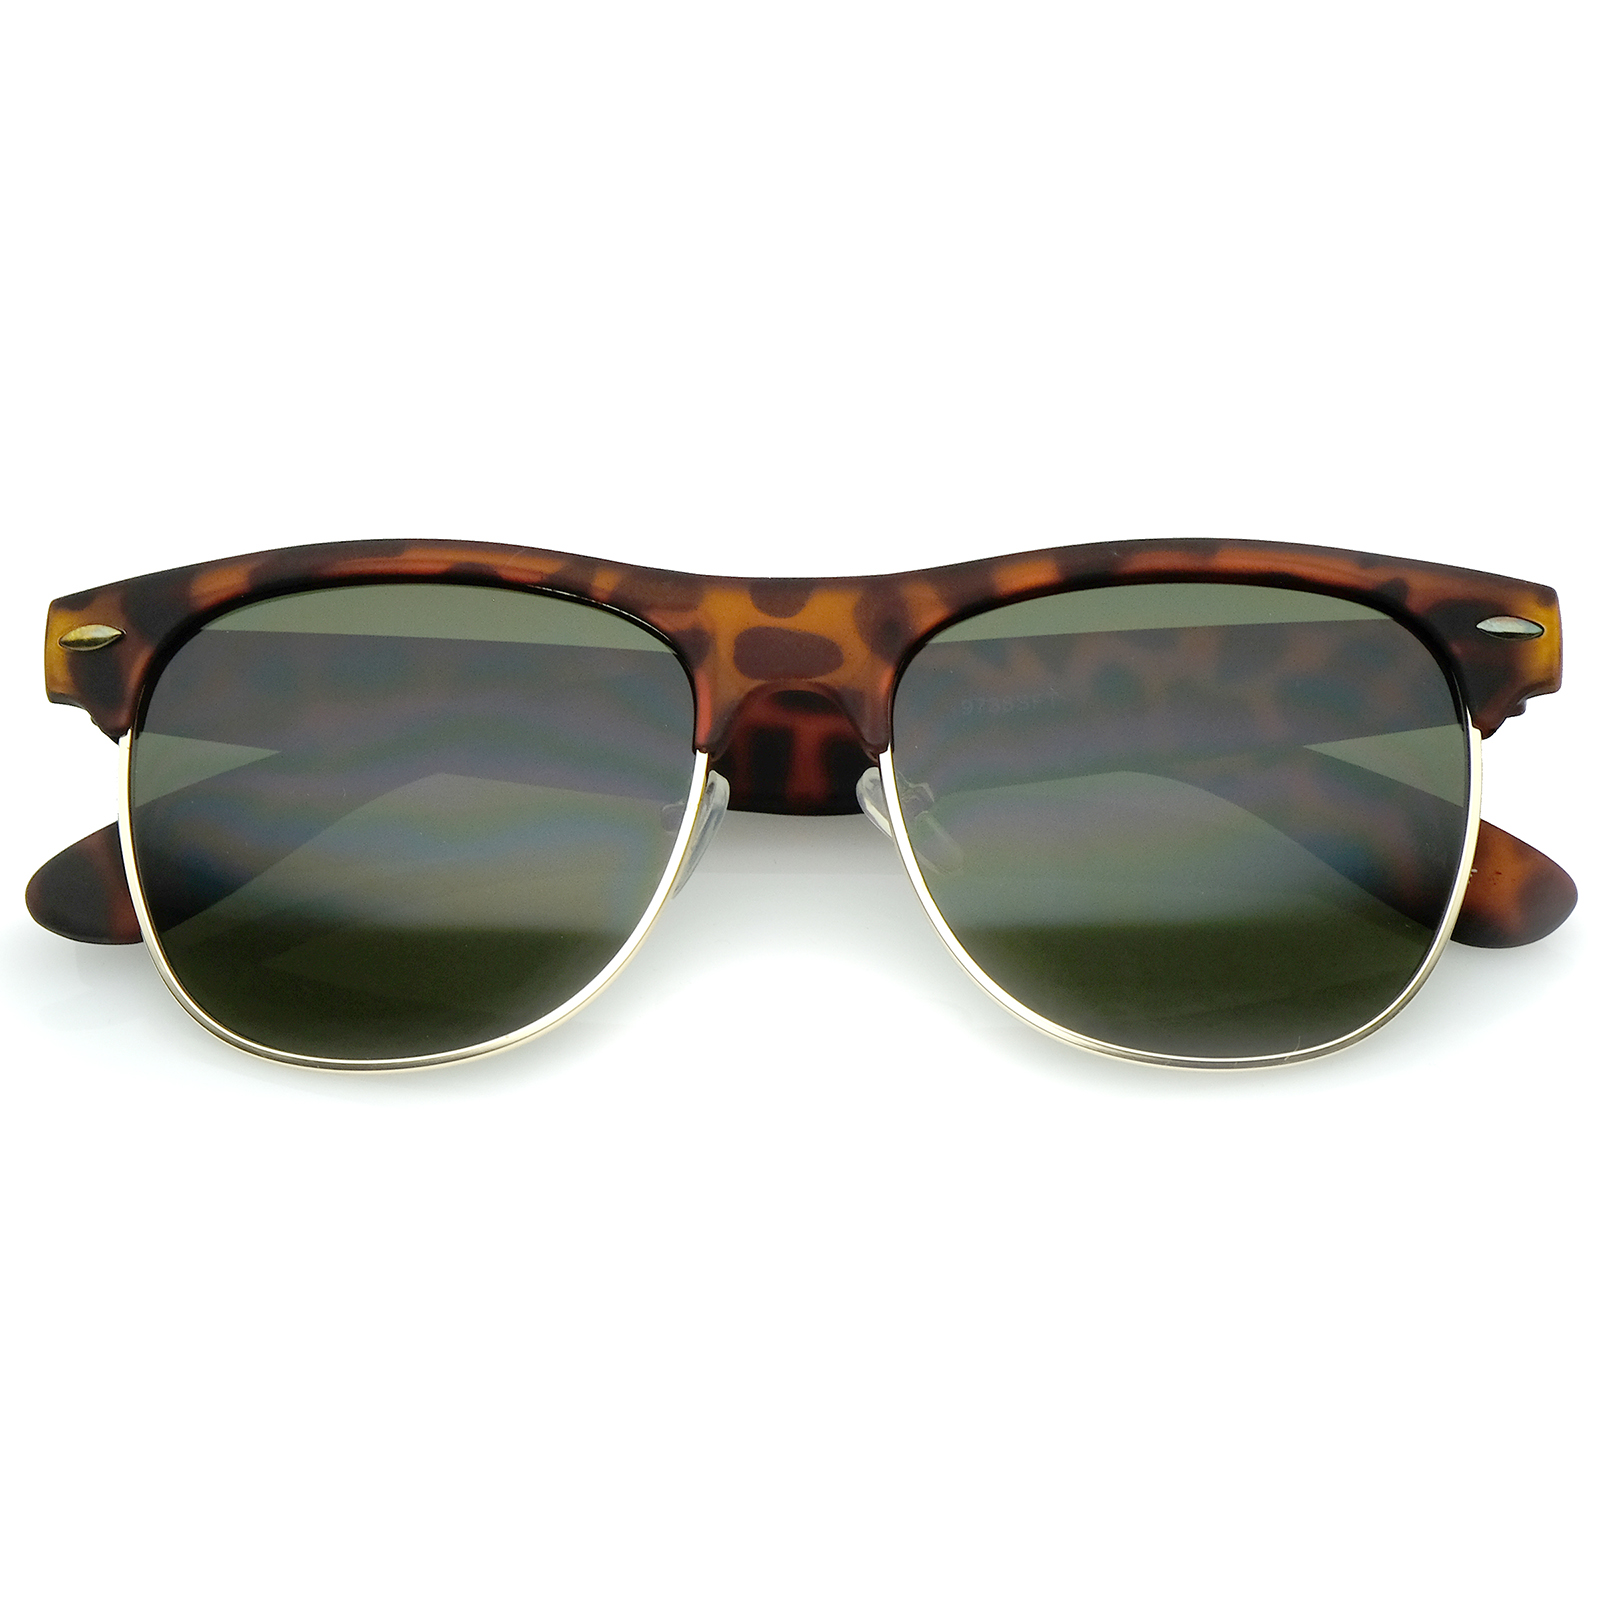 Half Frame Square Glasses : sunglassLA Classic Rubber Finish Half Frame Square Lens ...